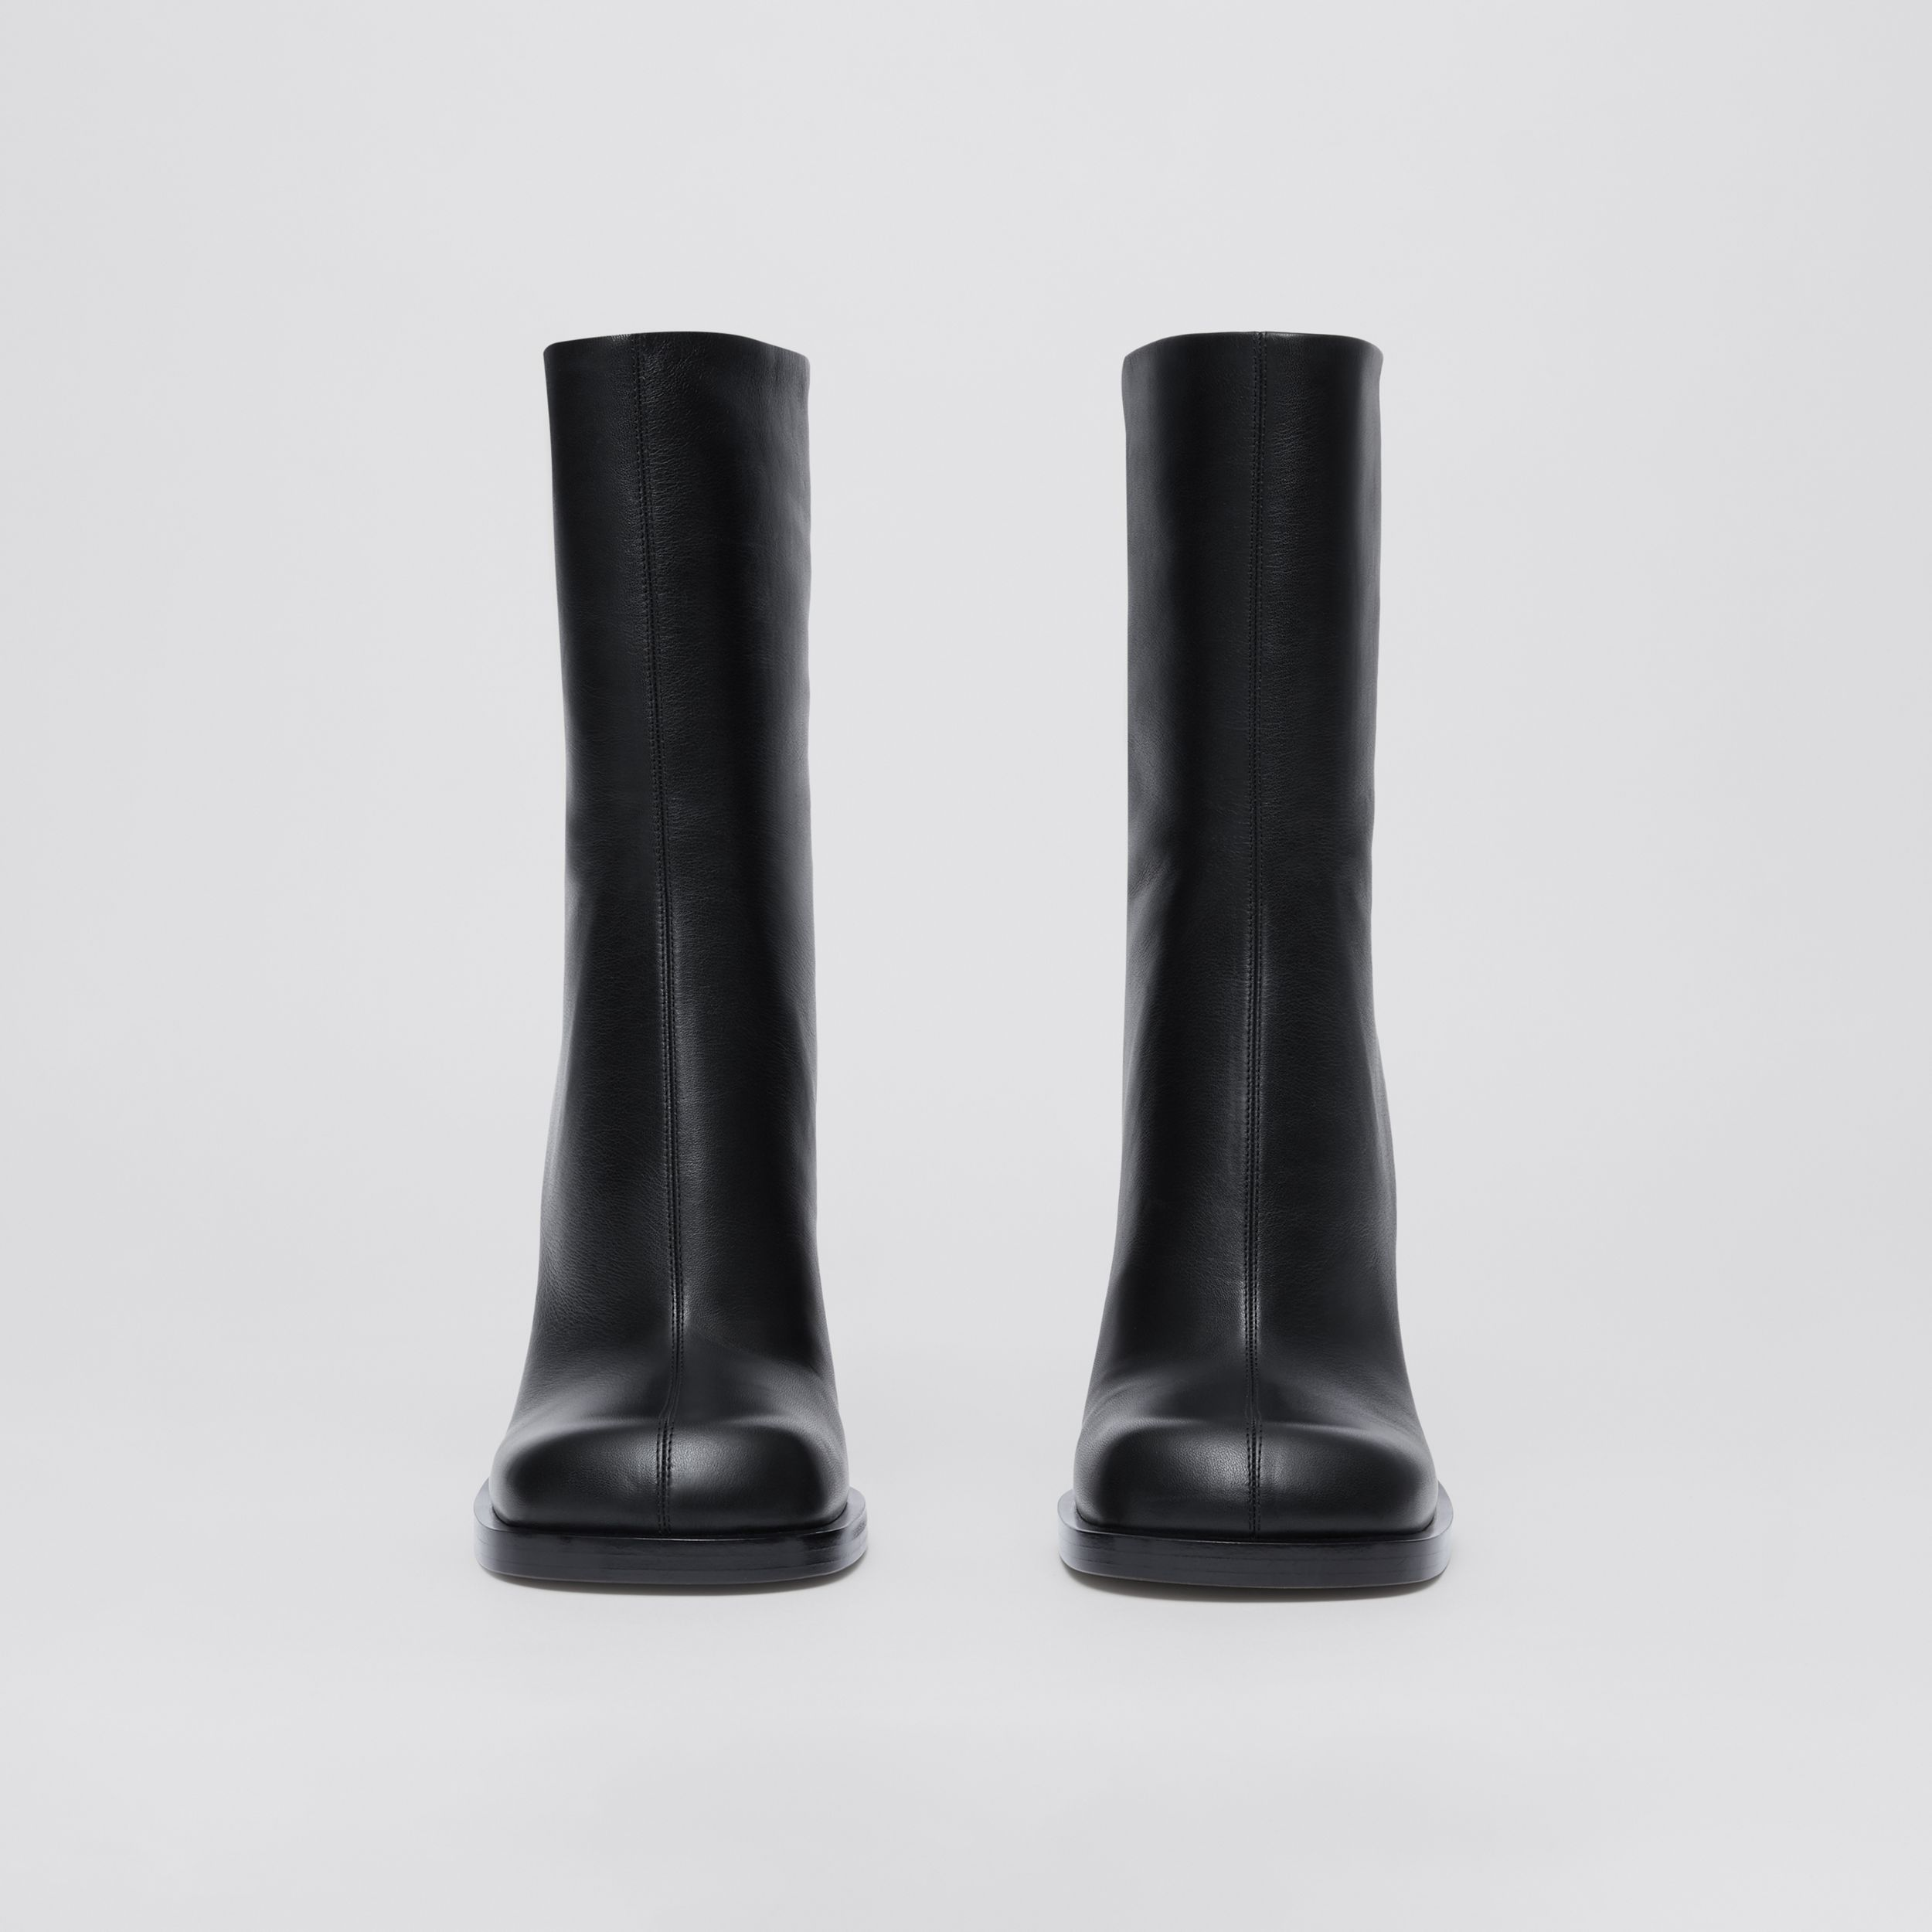 Vintage Check-lined Leather Ankle Boots in Black - Women | Burberry United States - 4